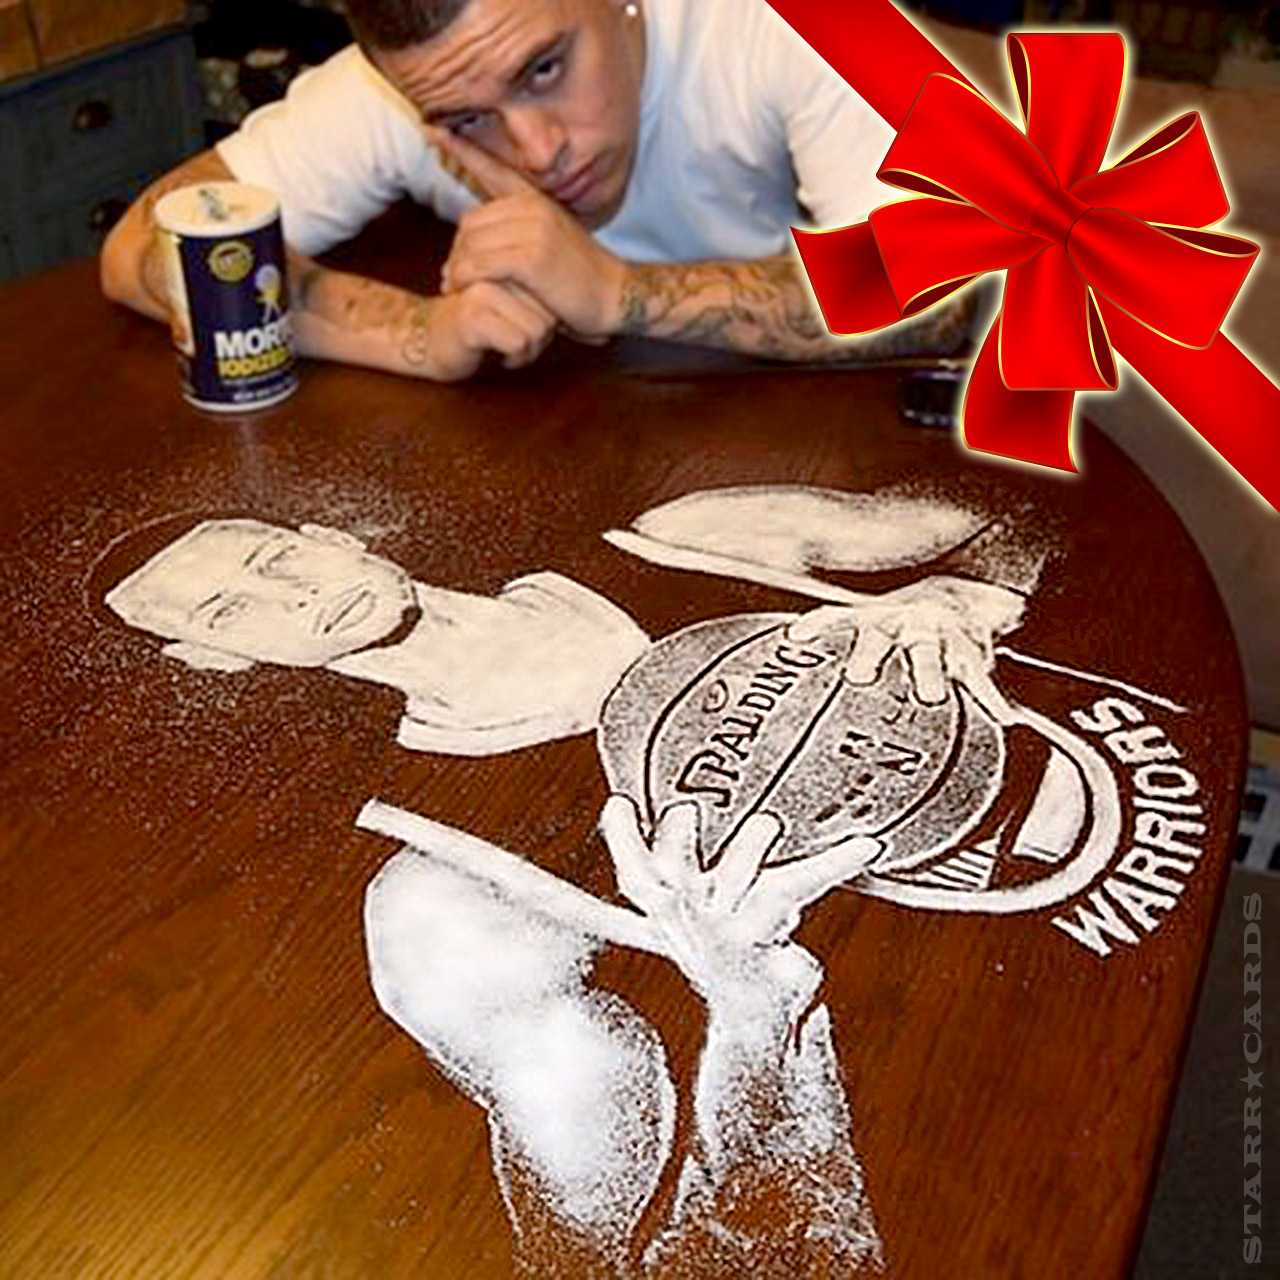 Rob the Original makes Steph Curry in salt art